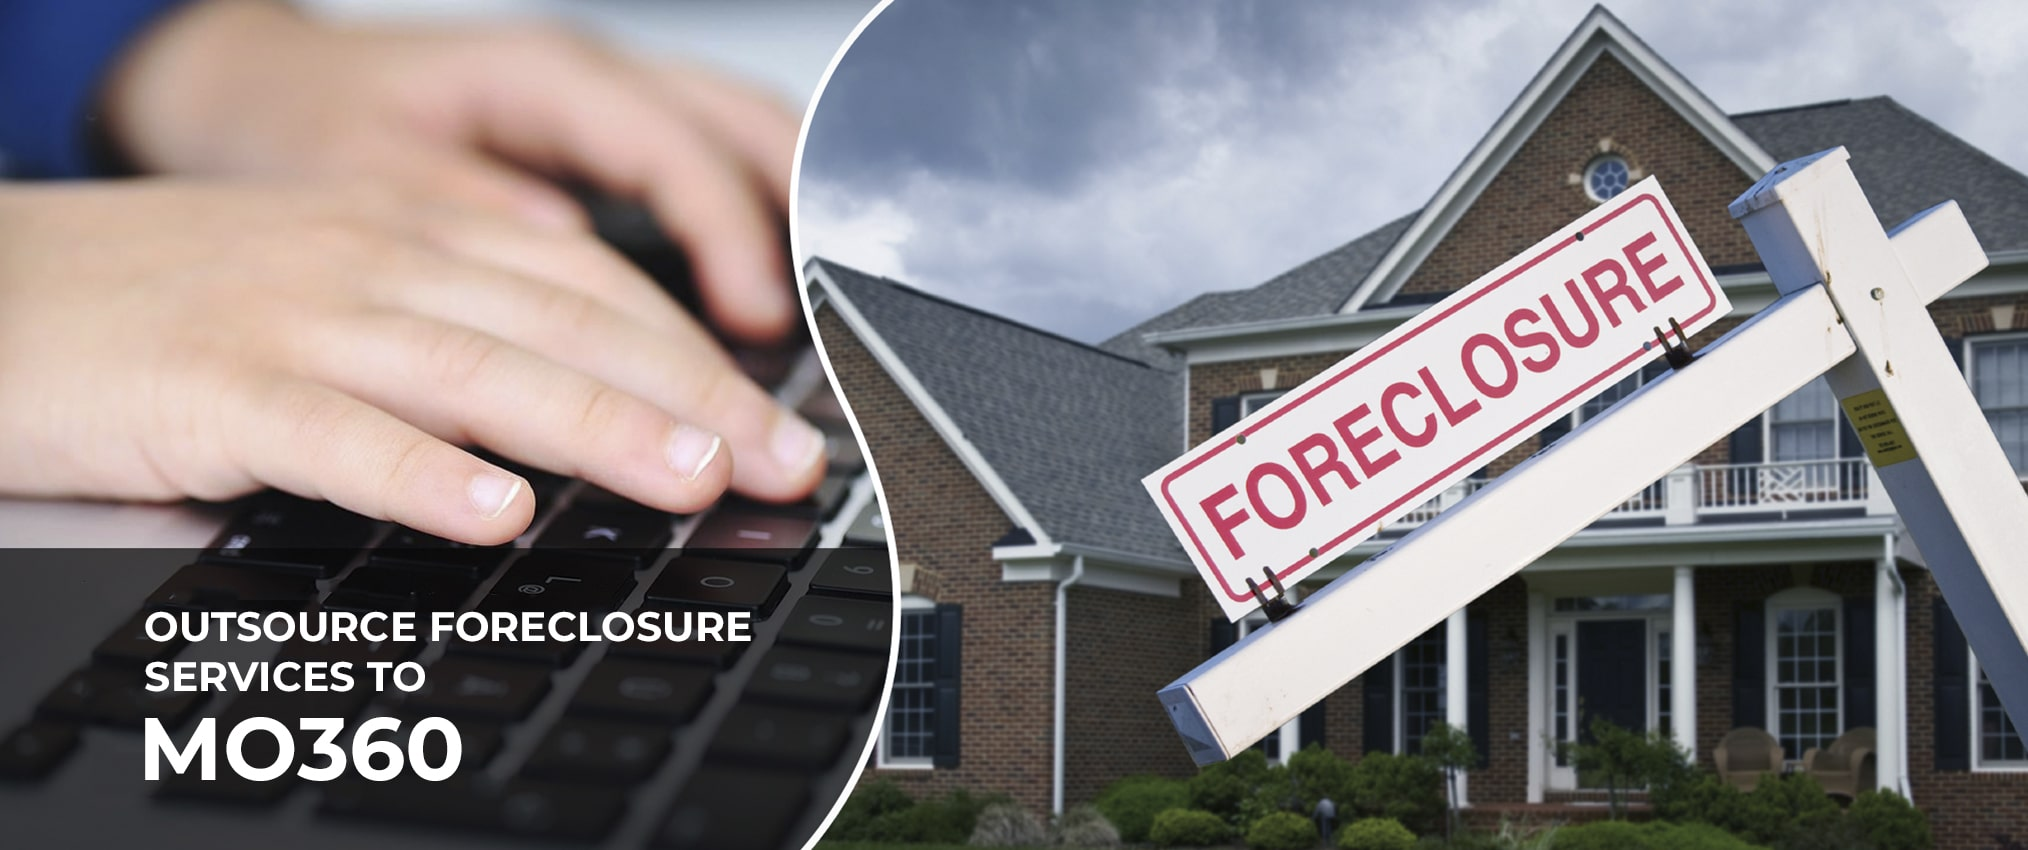 outsource foreclosure services mo360